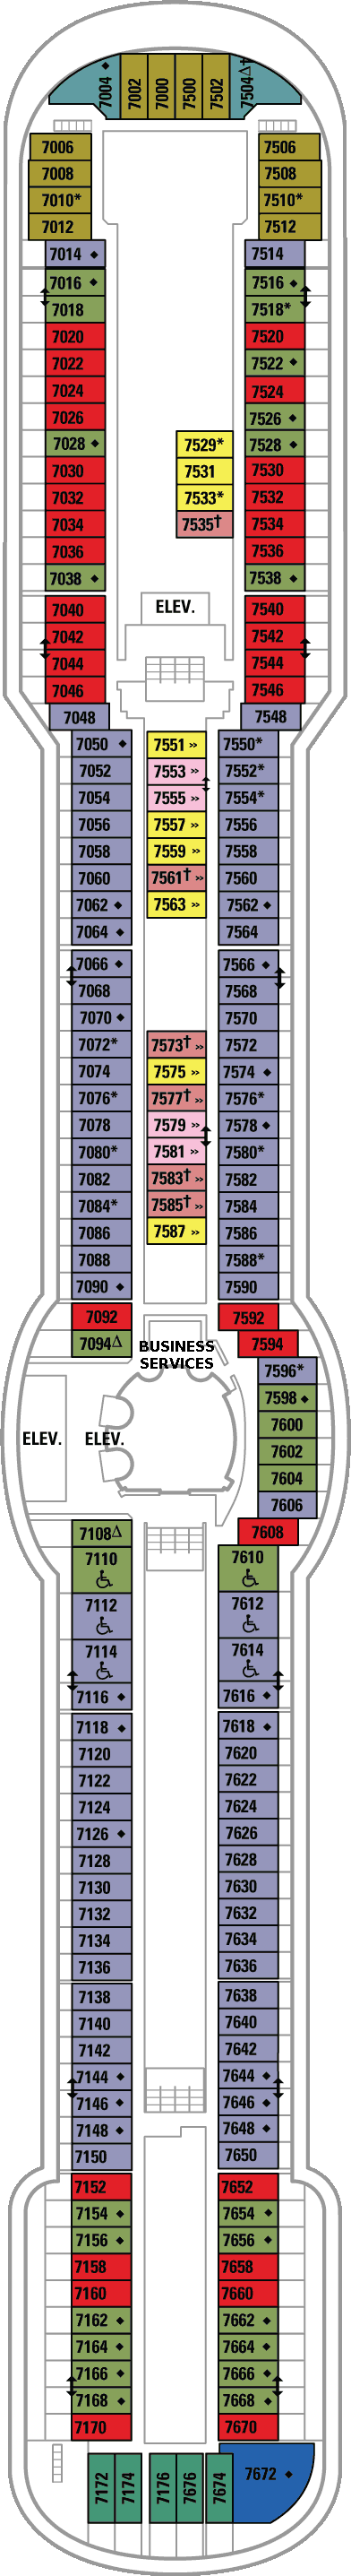 Radiance of the Seas Deck Plans